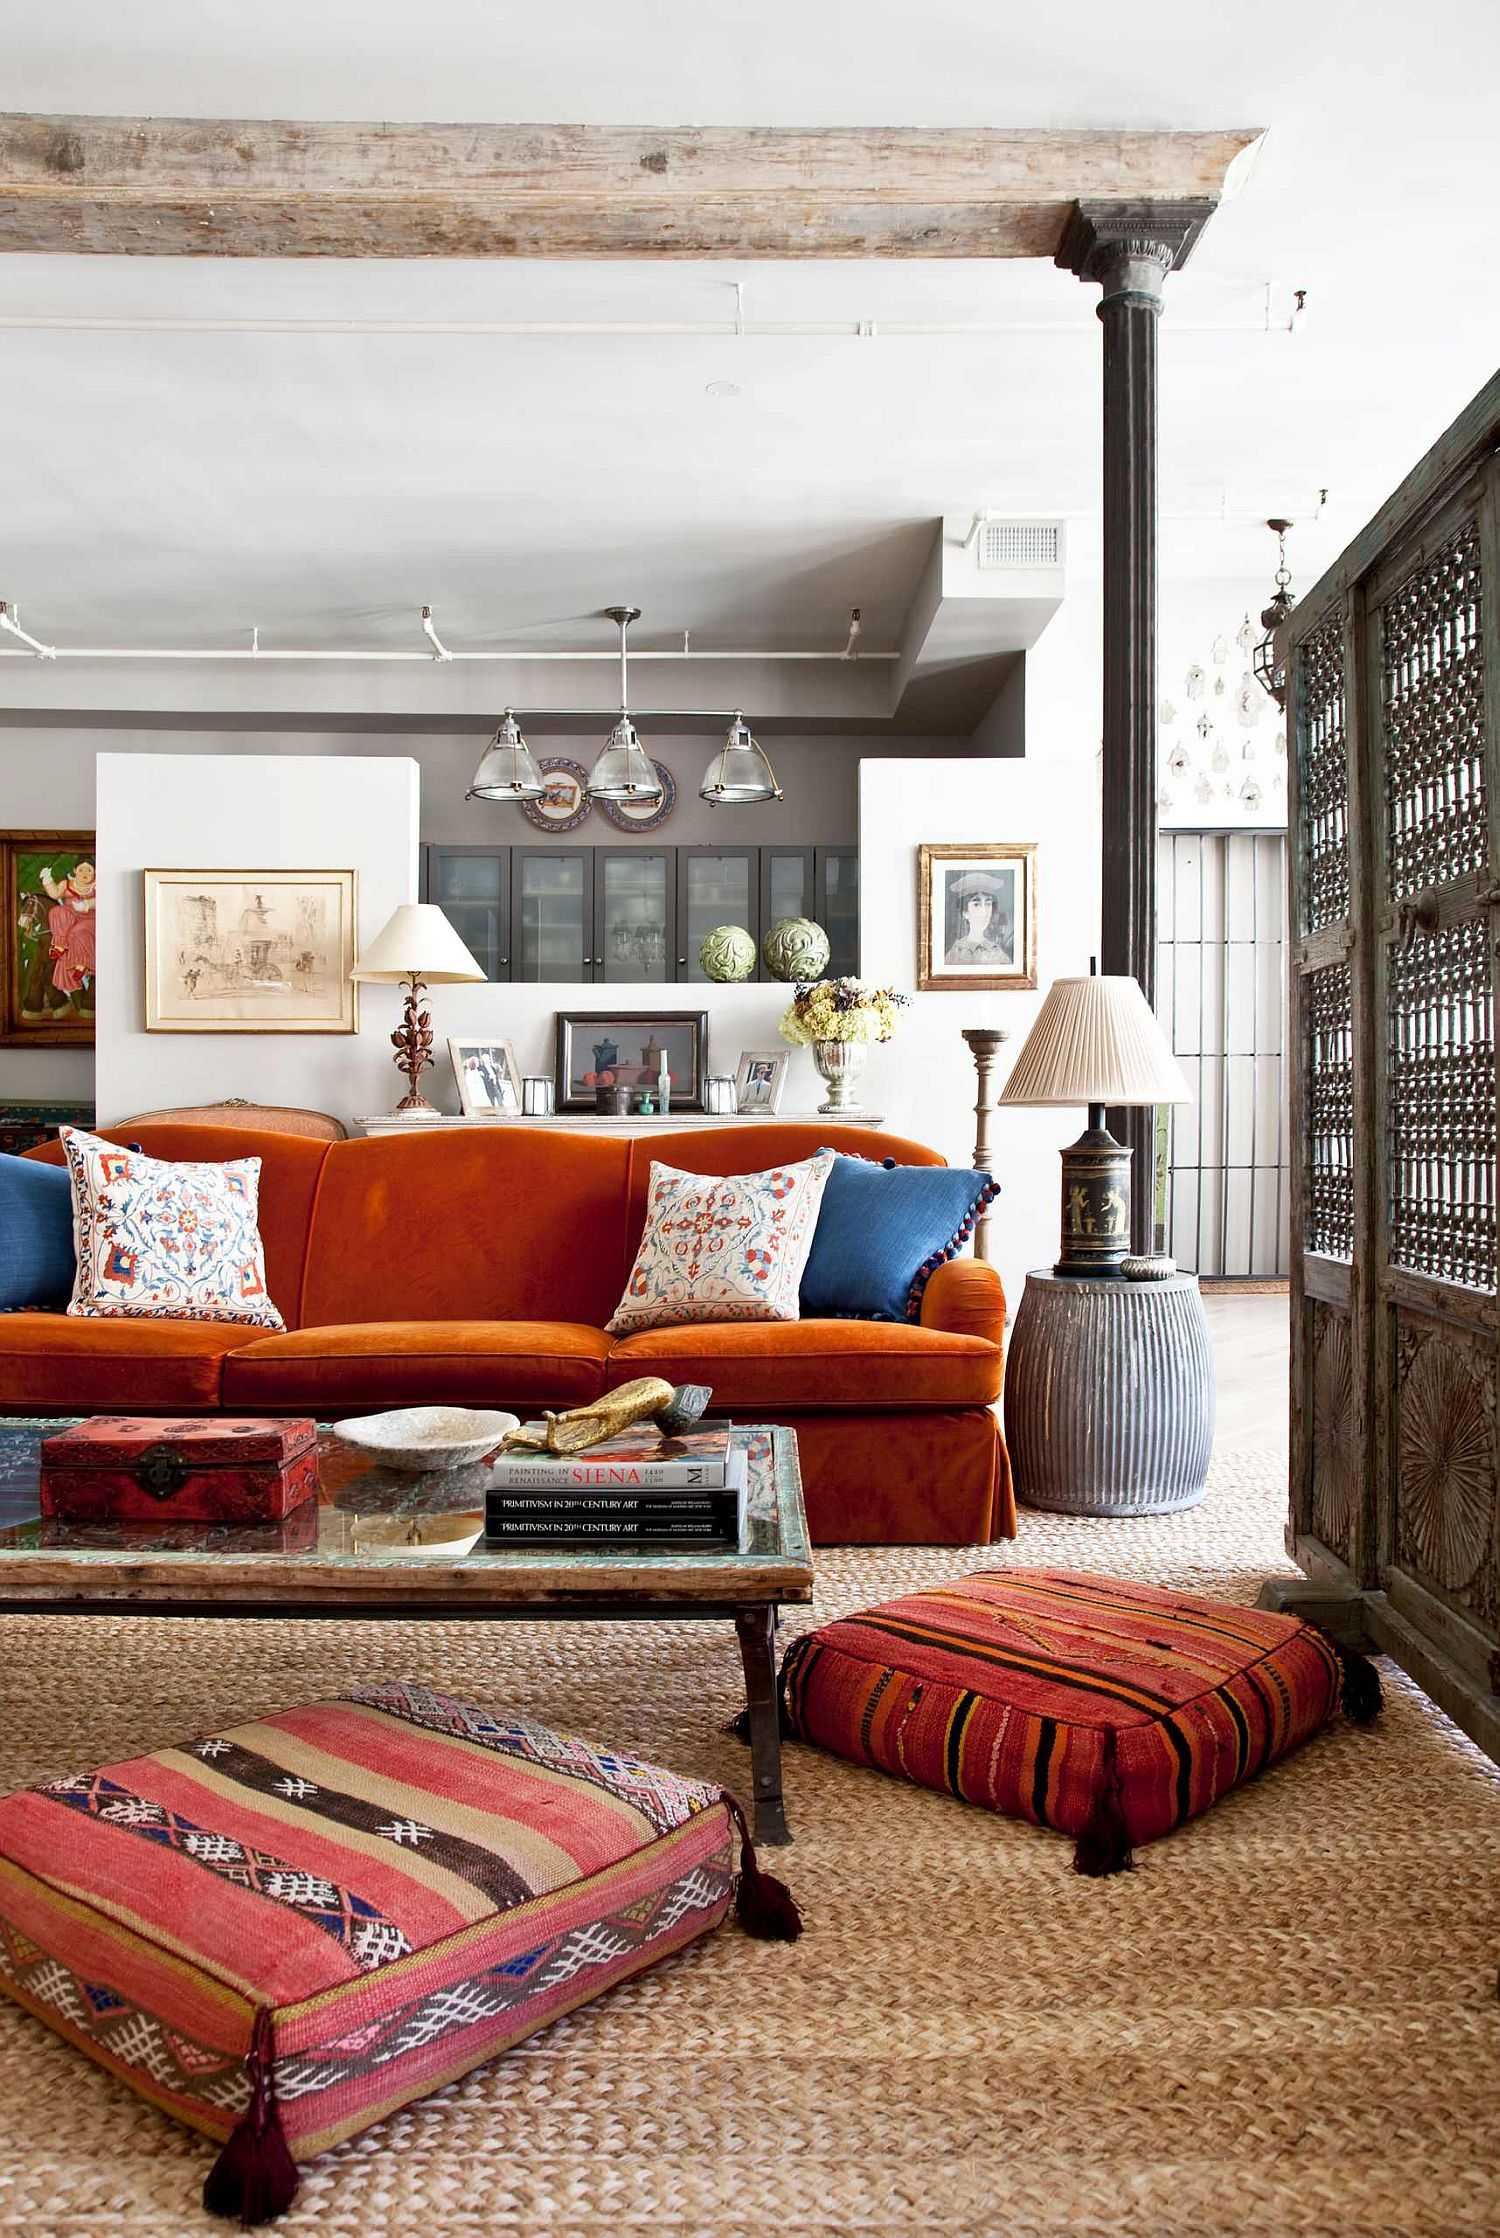 Bohemian style living room with pops of bright color everywhere